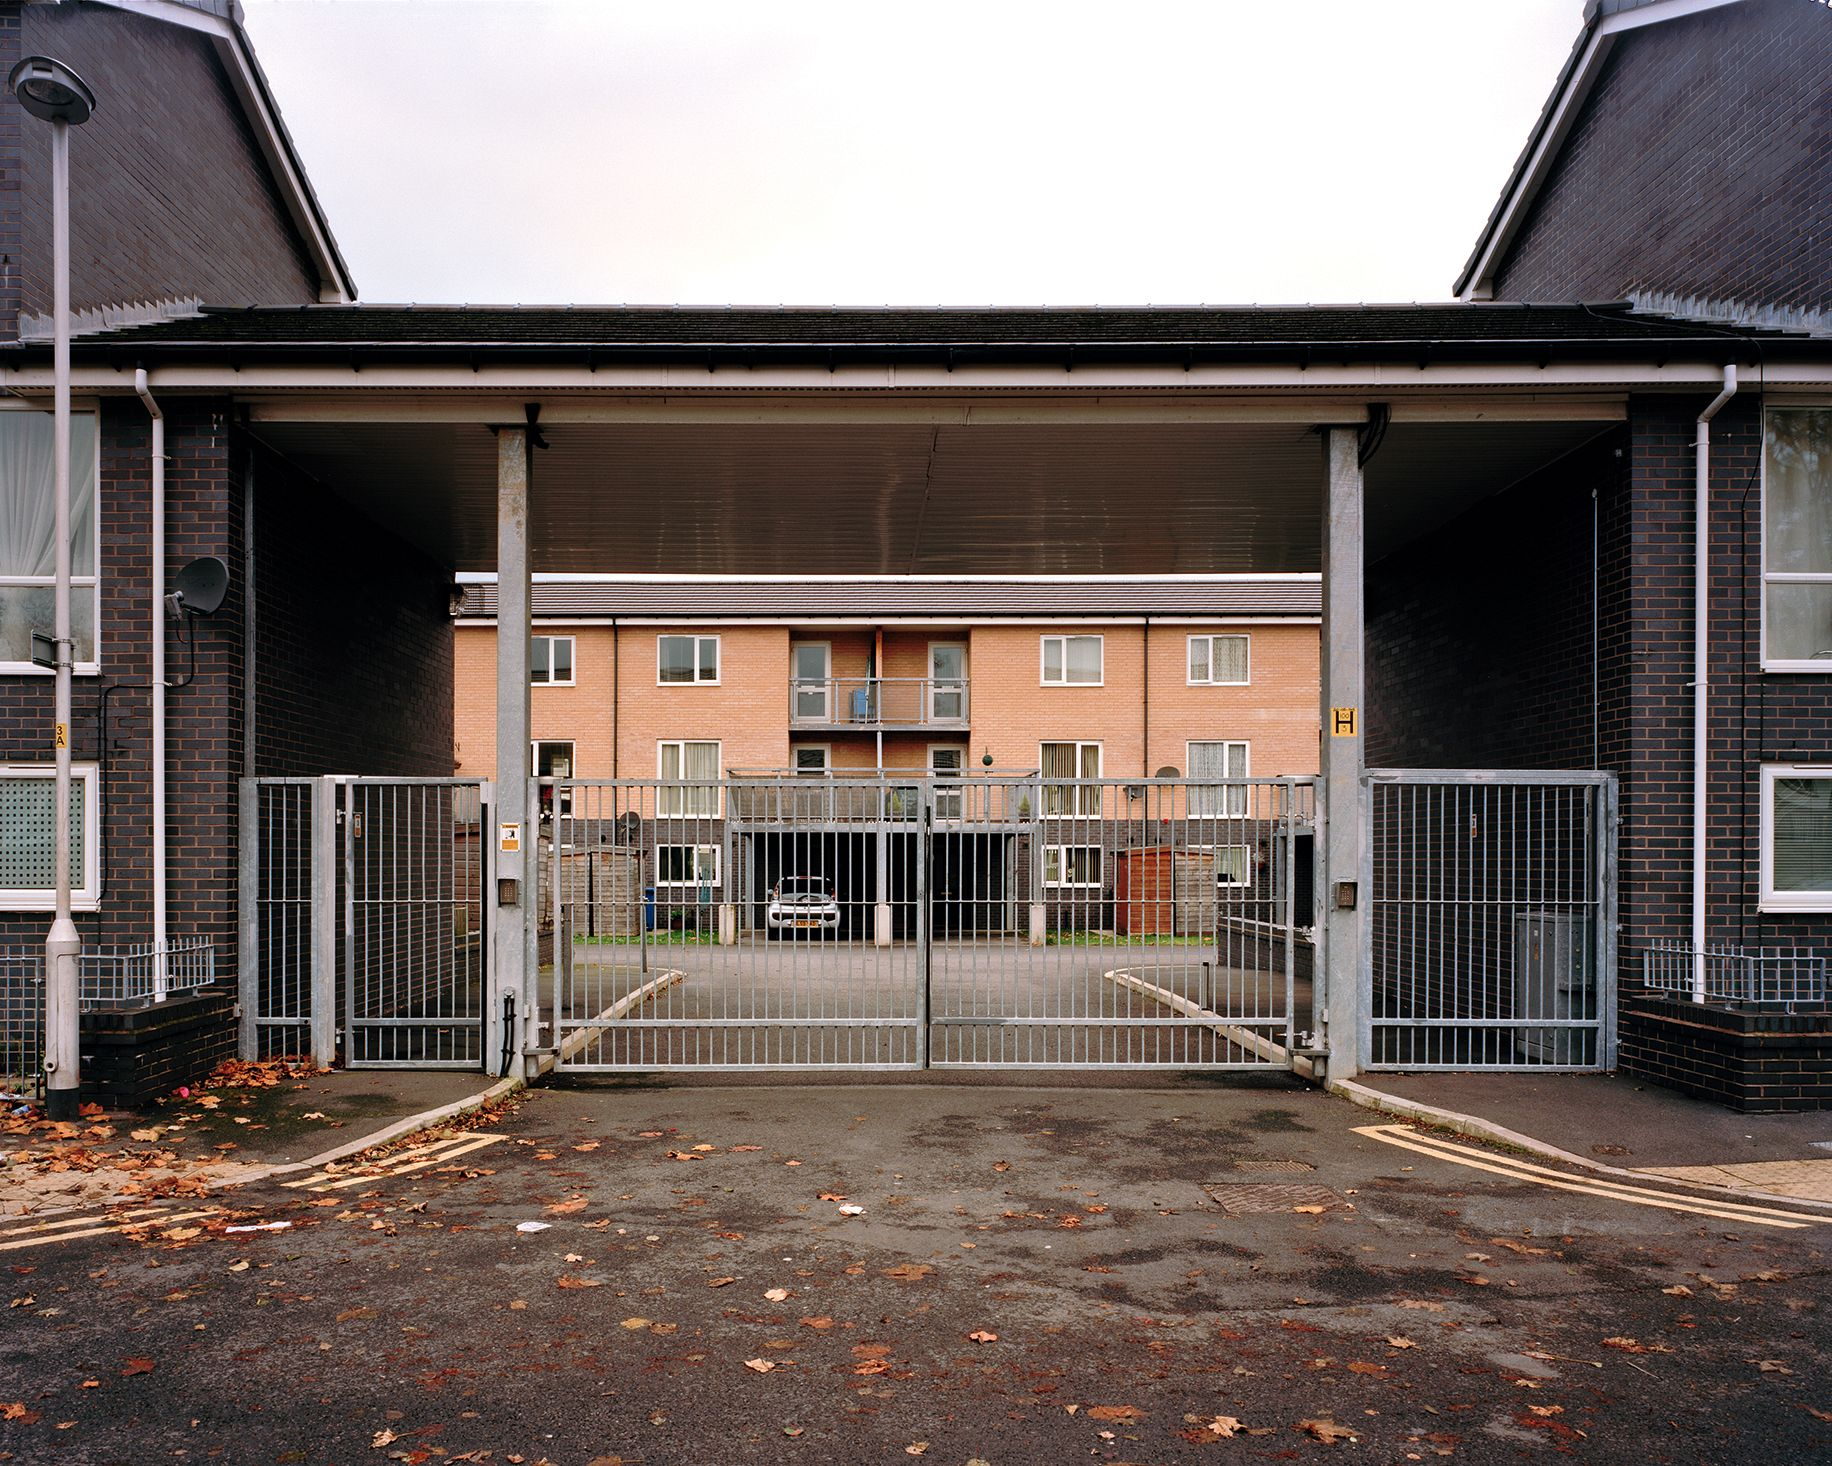 Gated development, Stockport, Greater Manchester.  Photo: Henrietta Williams